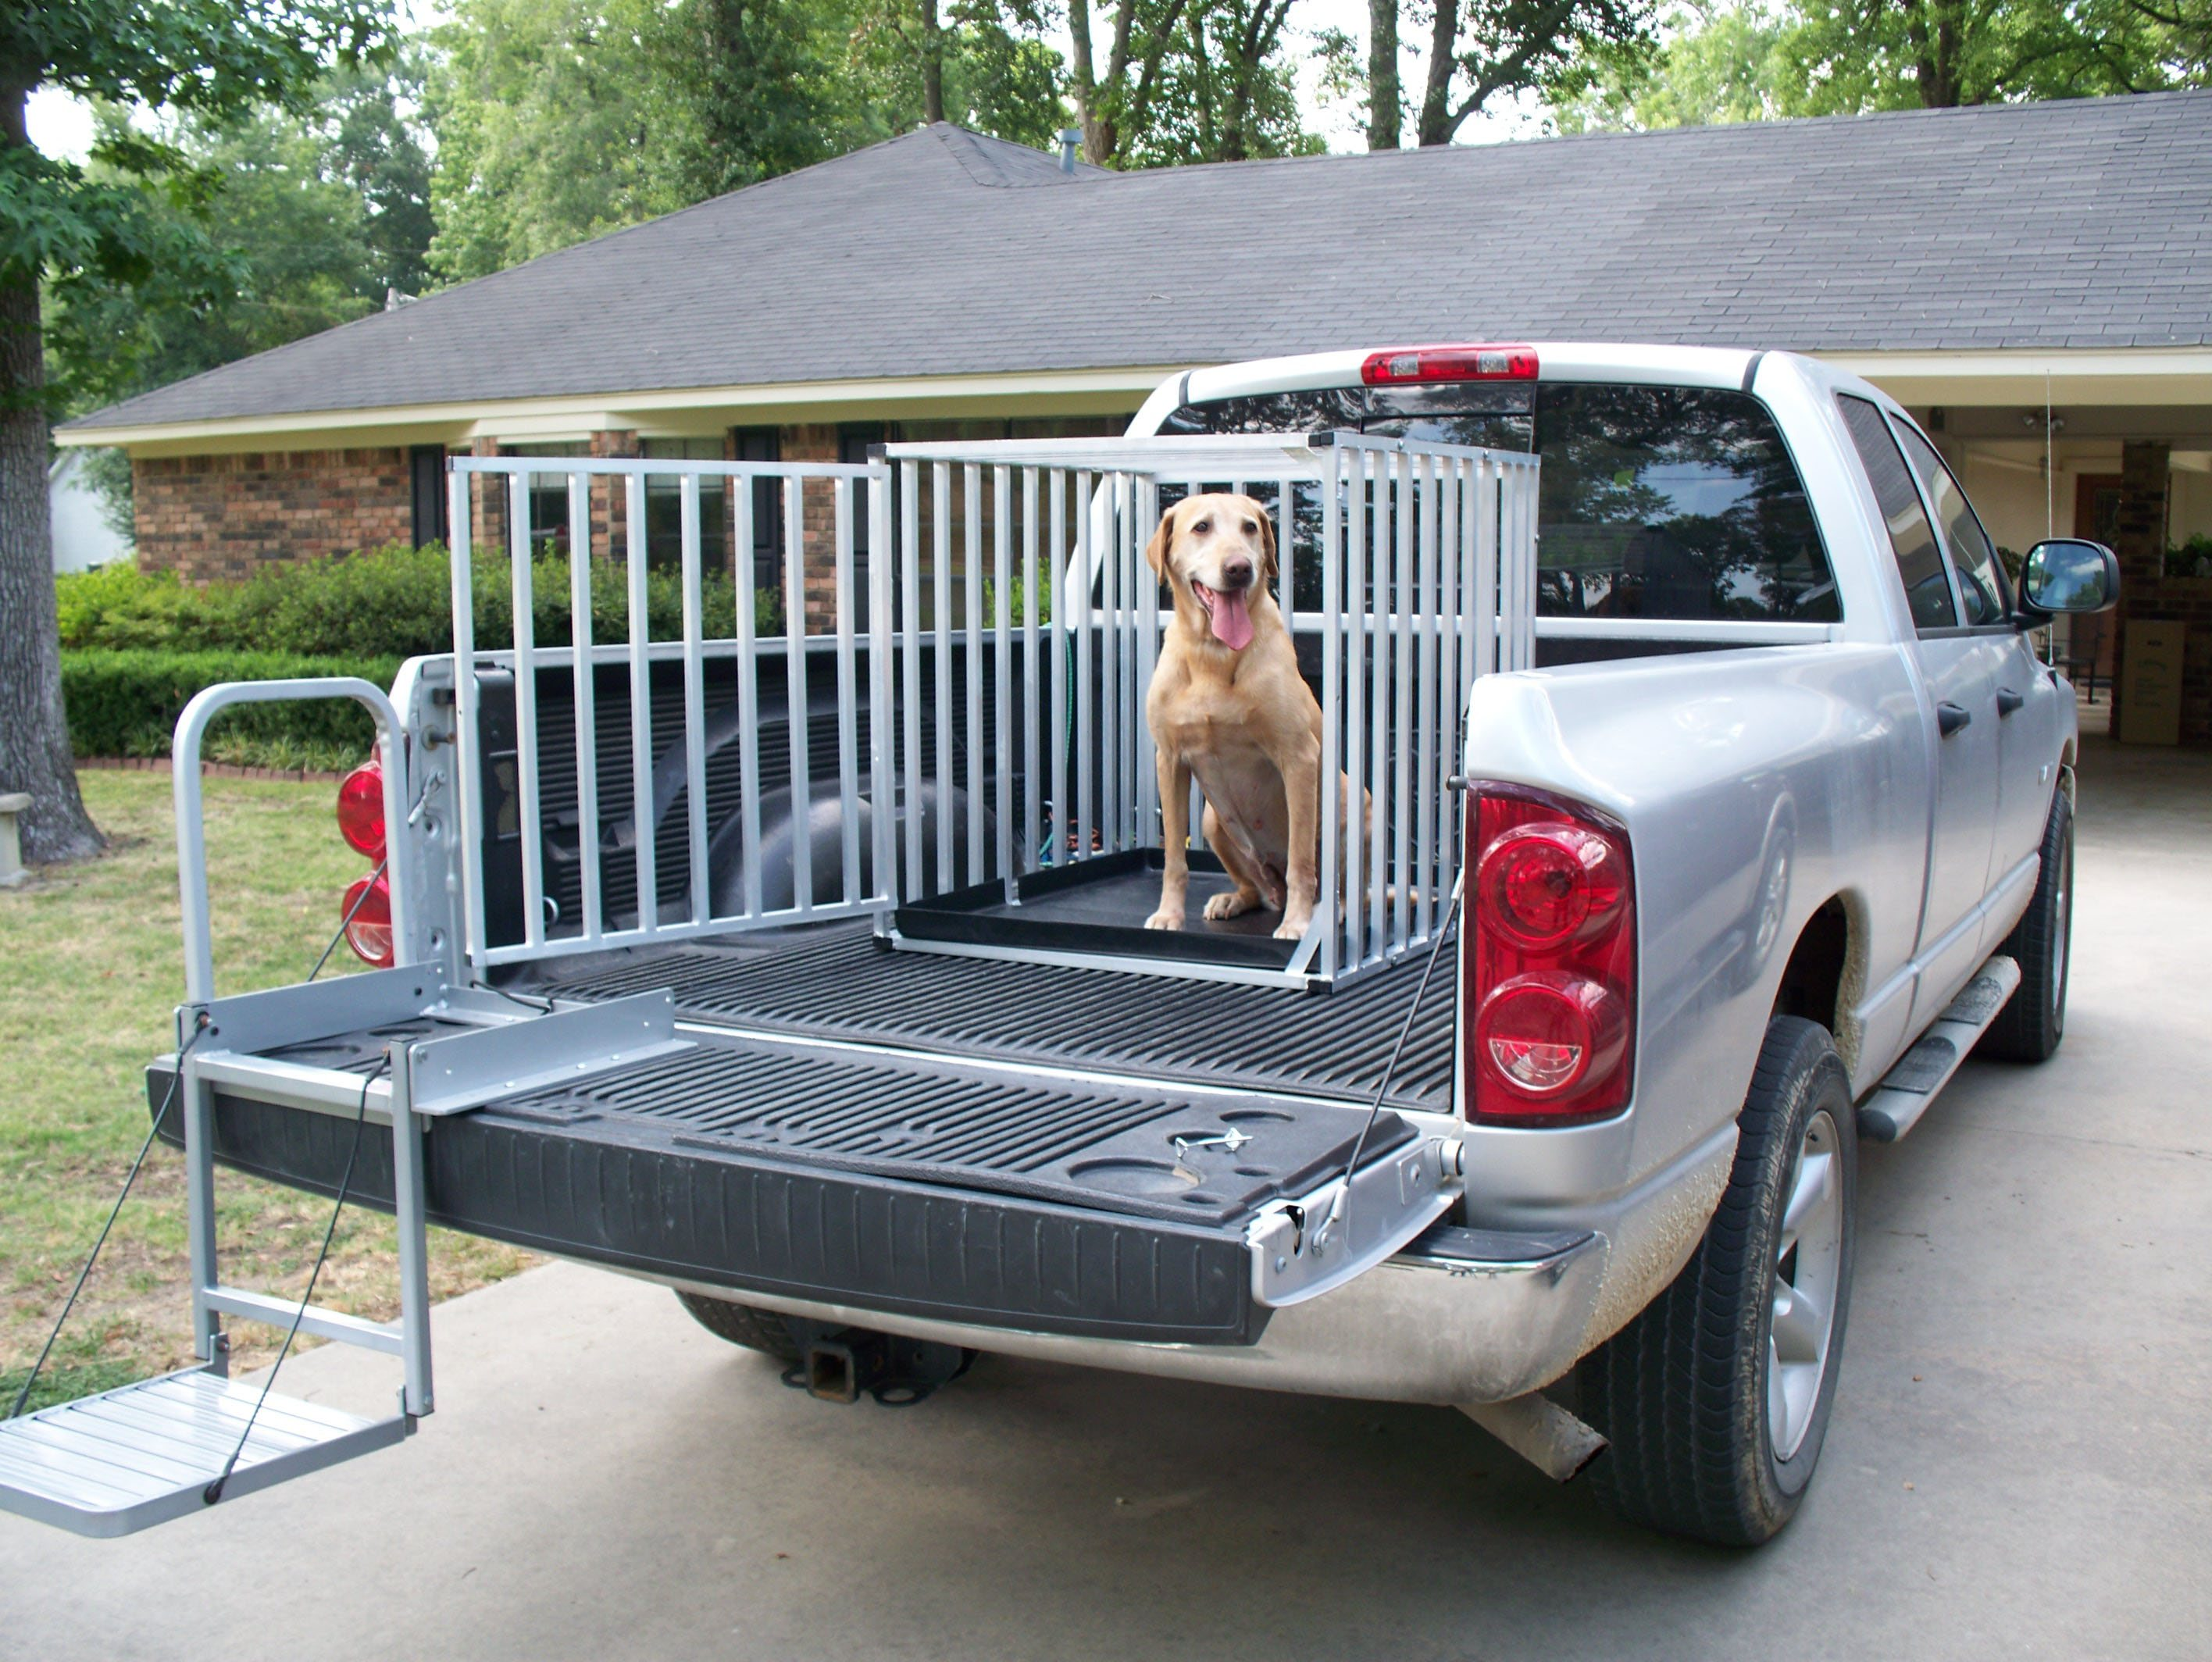 Psa Keep Dogs Out Of Truck Beds 100 000 Die Annually